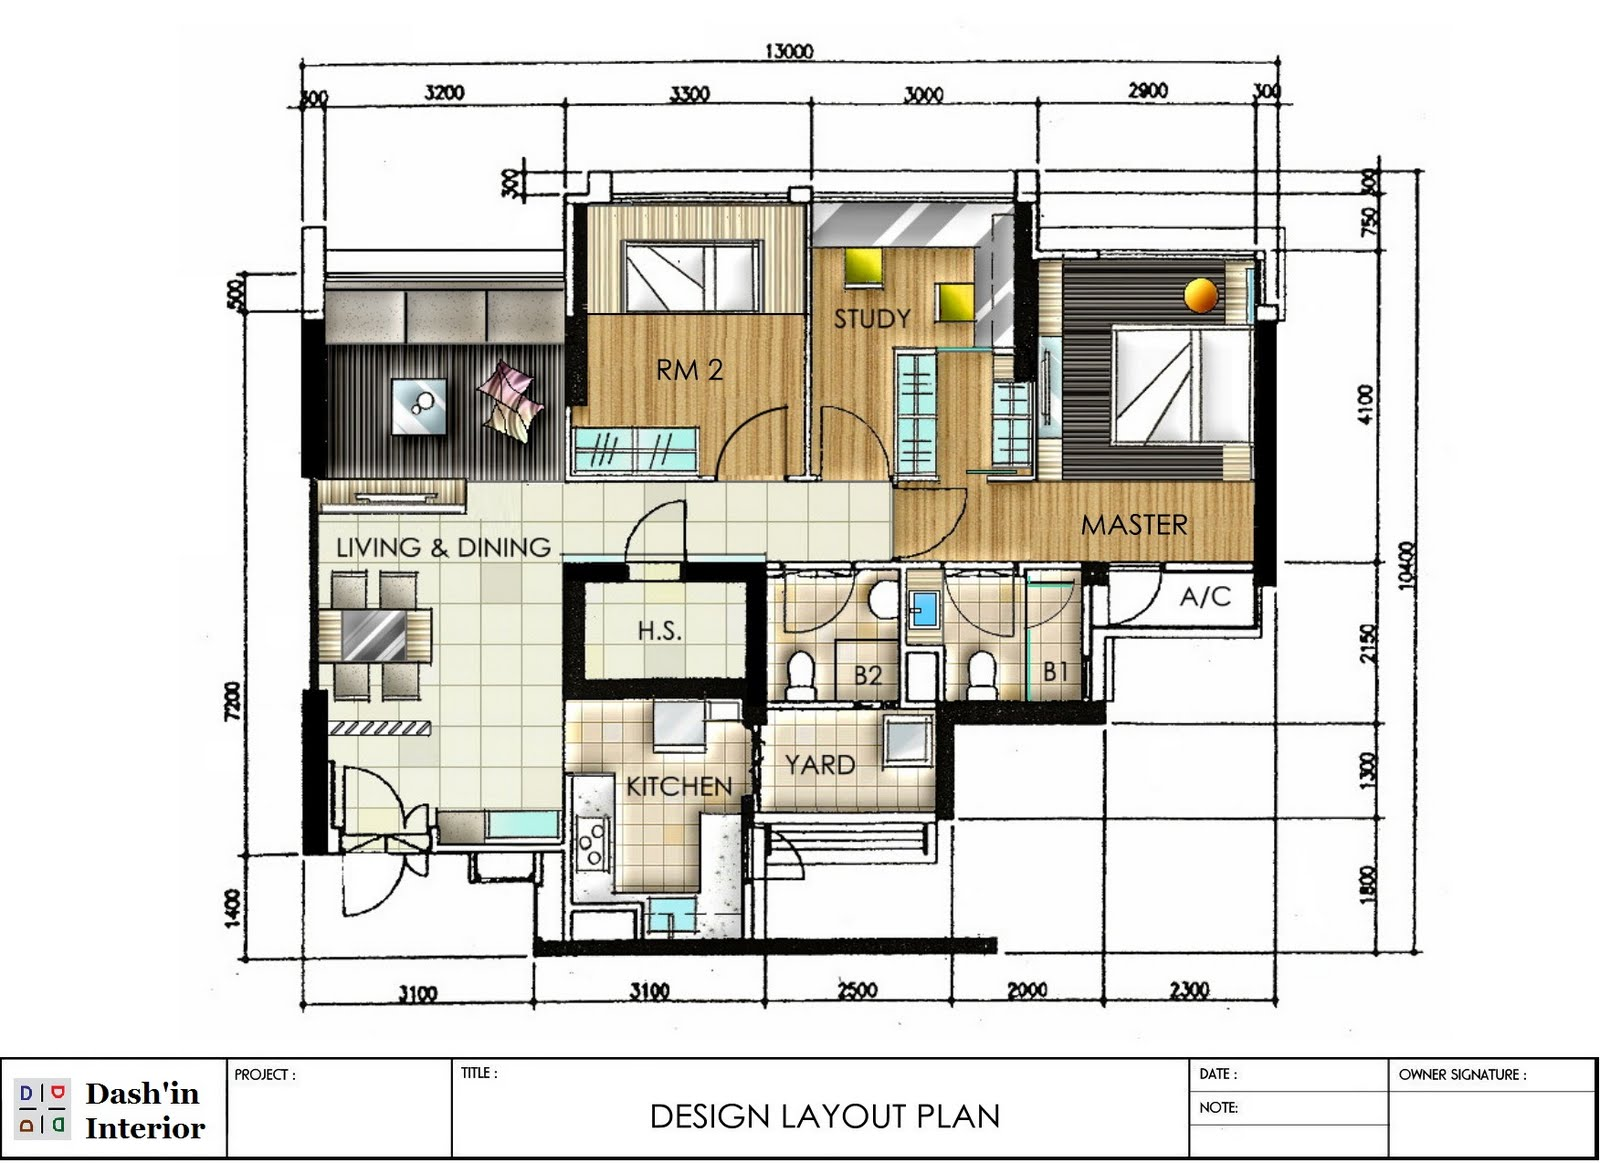 Dash 39 in interior hand drawn designs floor plan layout for Layout design for house